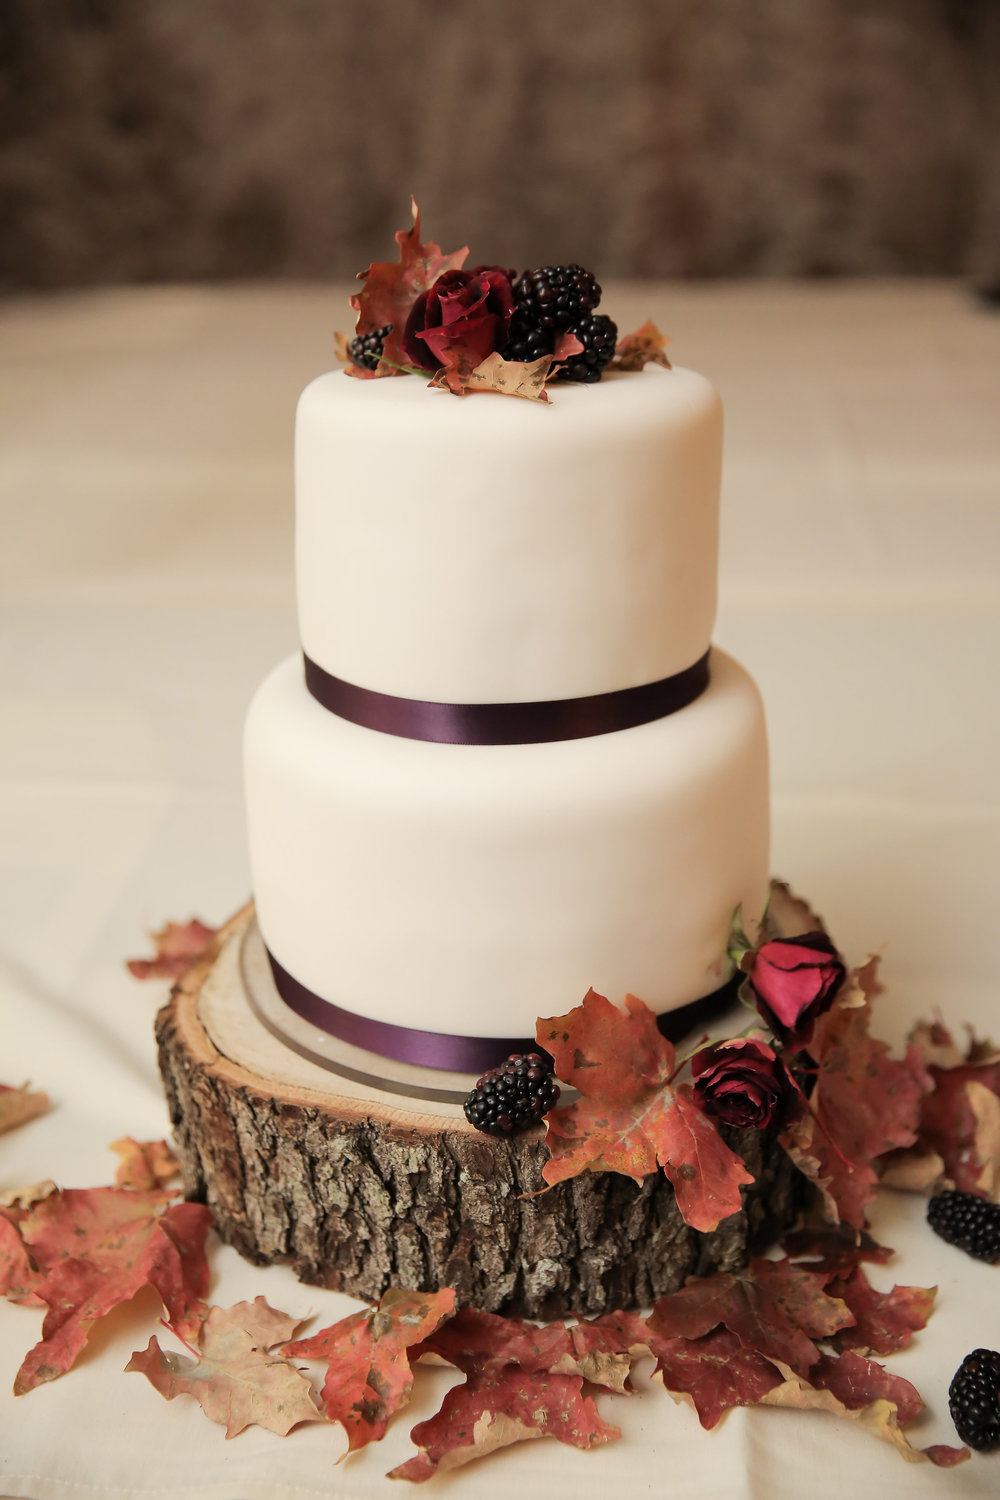 Foliage + berries= fall wedding cake heaven!  Photo: Pepper Nix